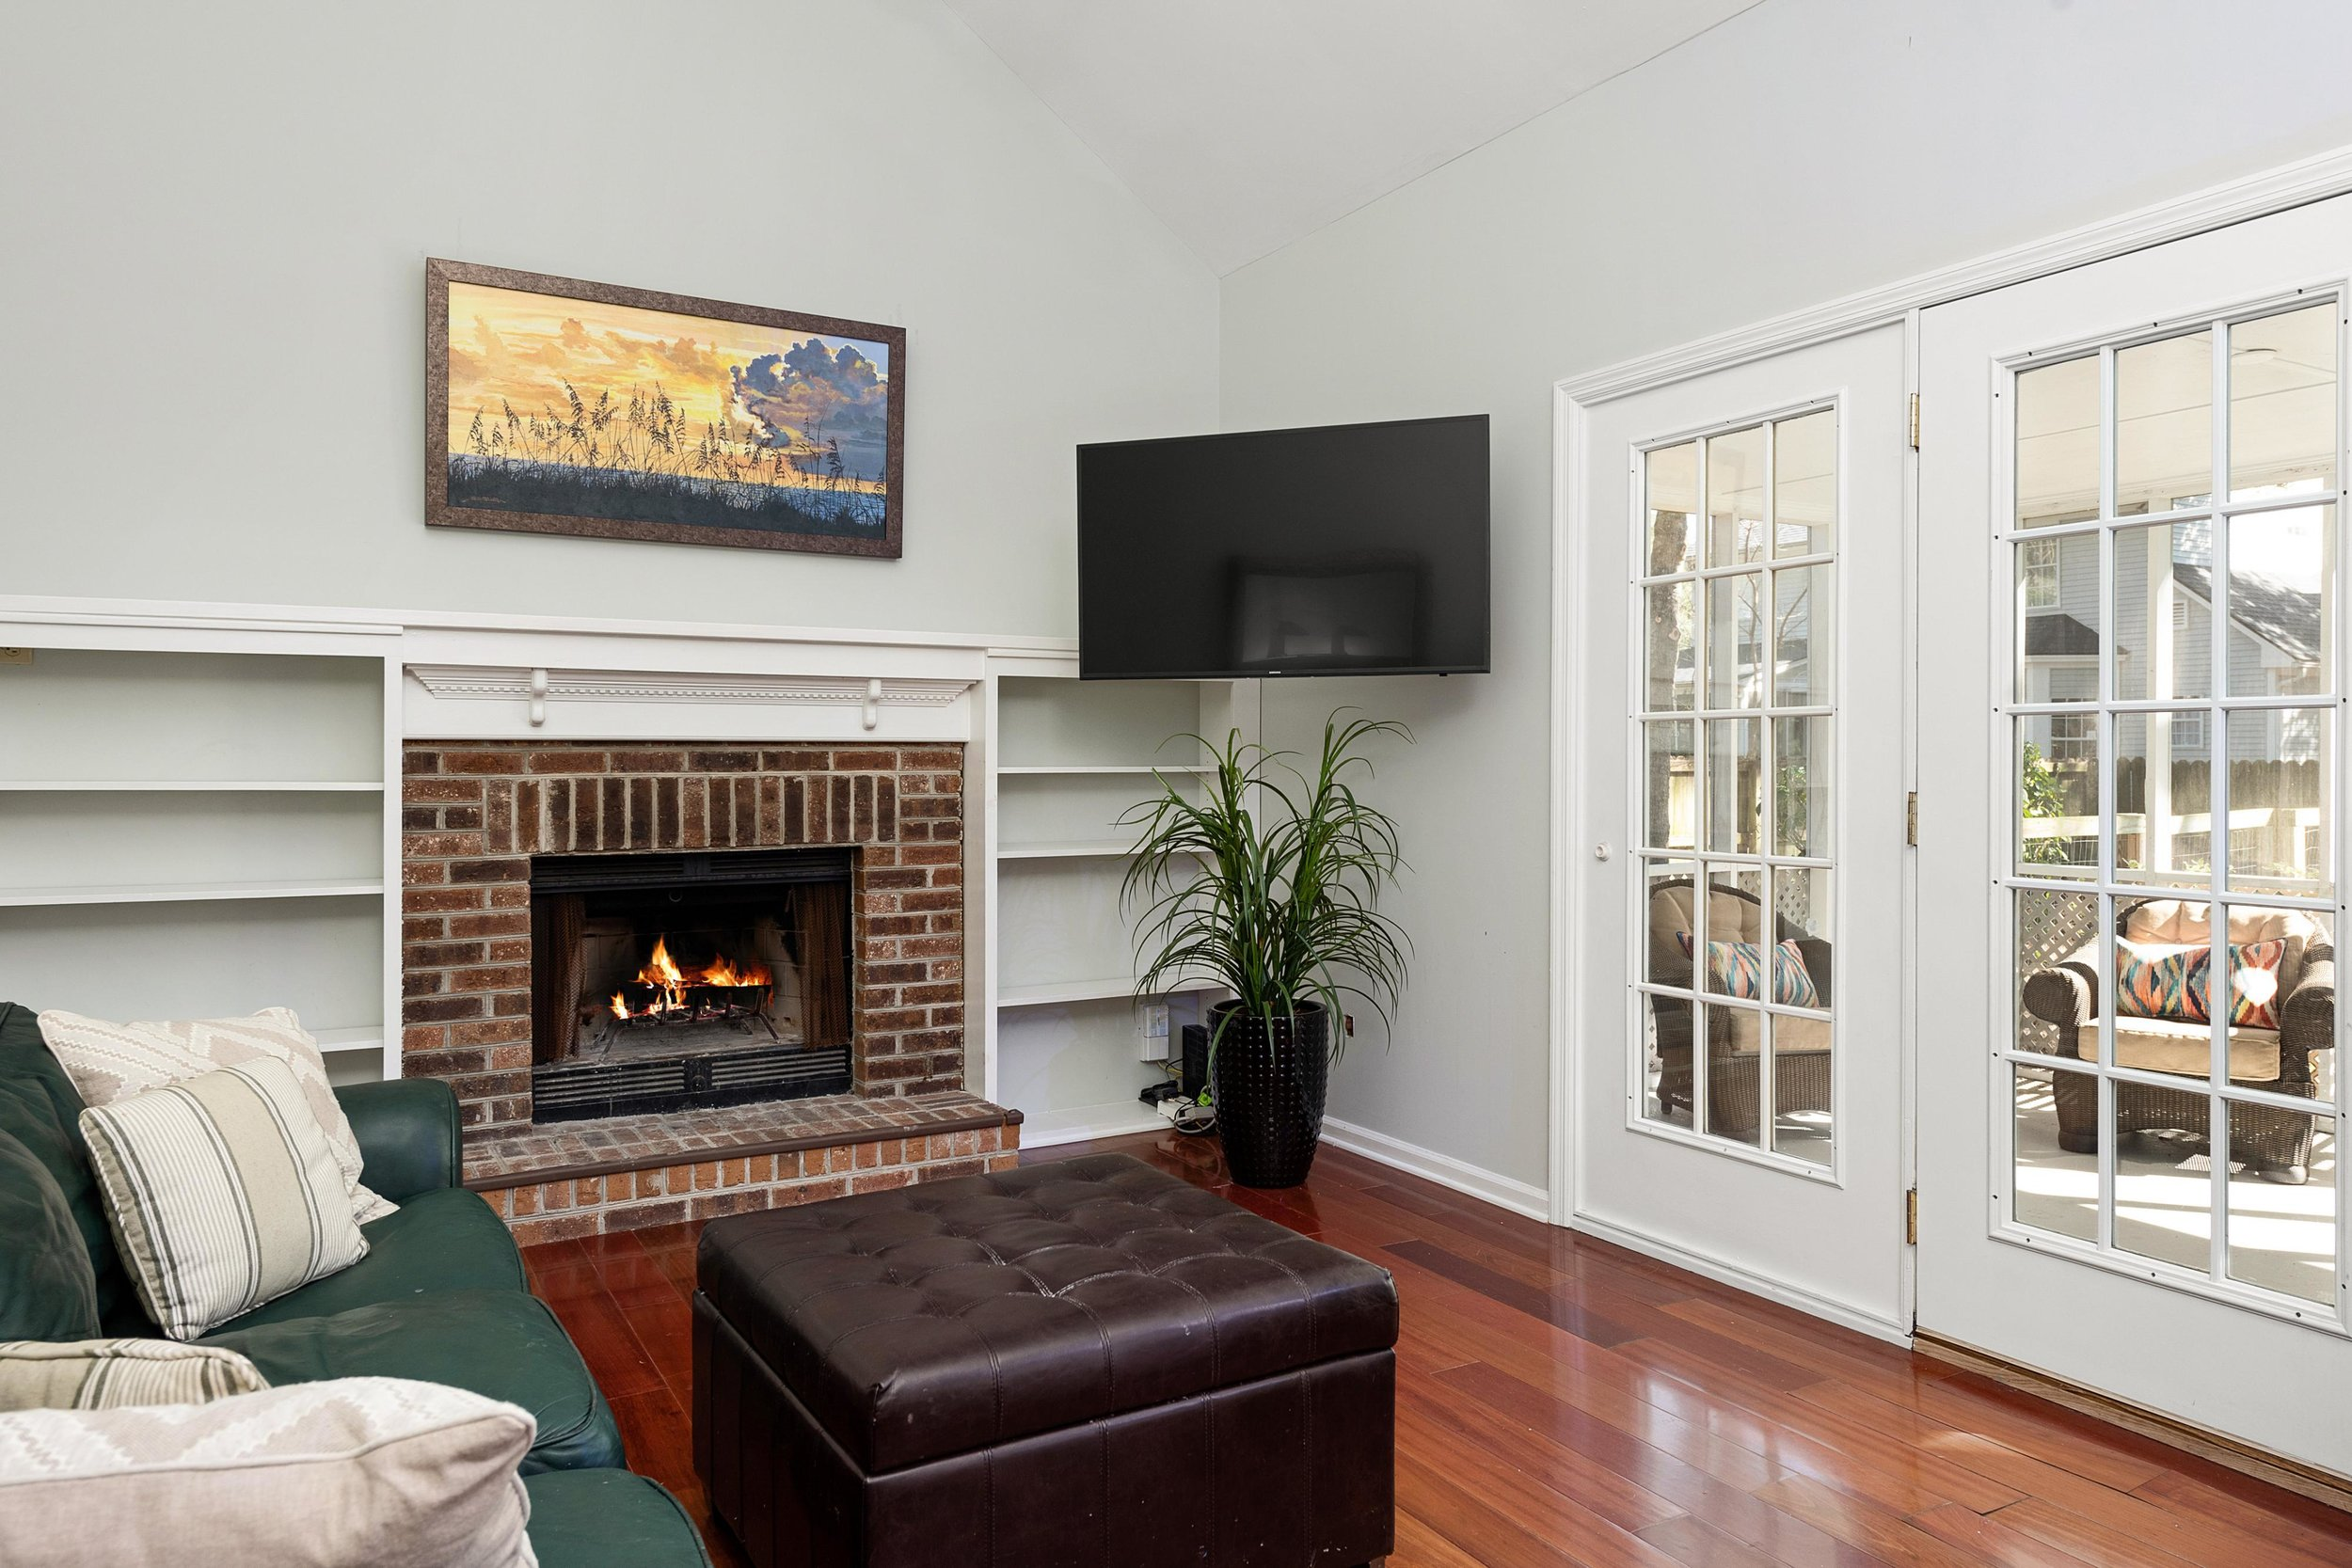 Living Room with Fireplace.jpg